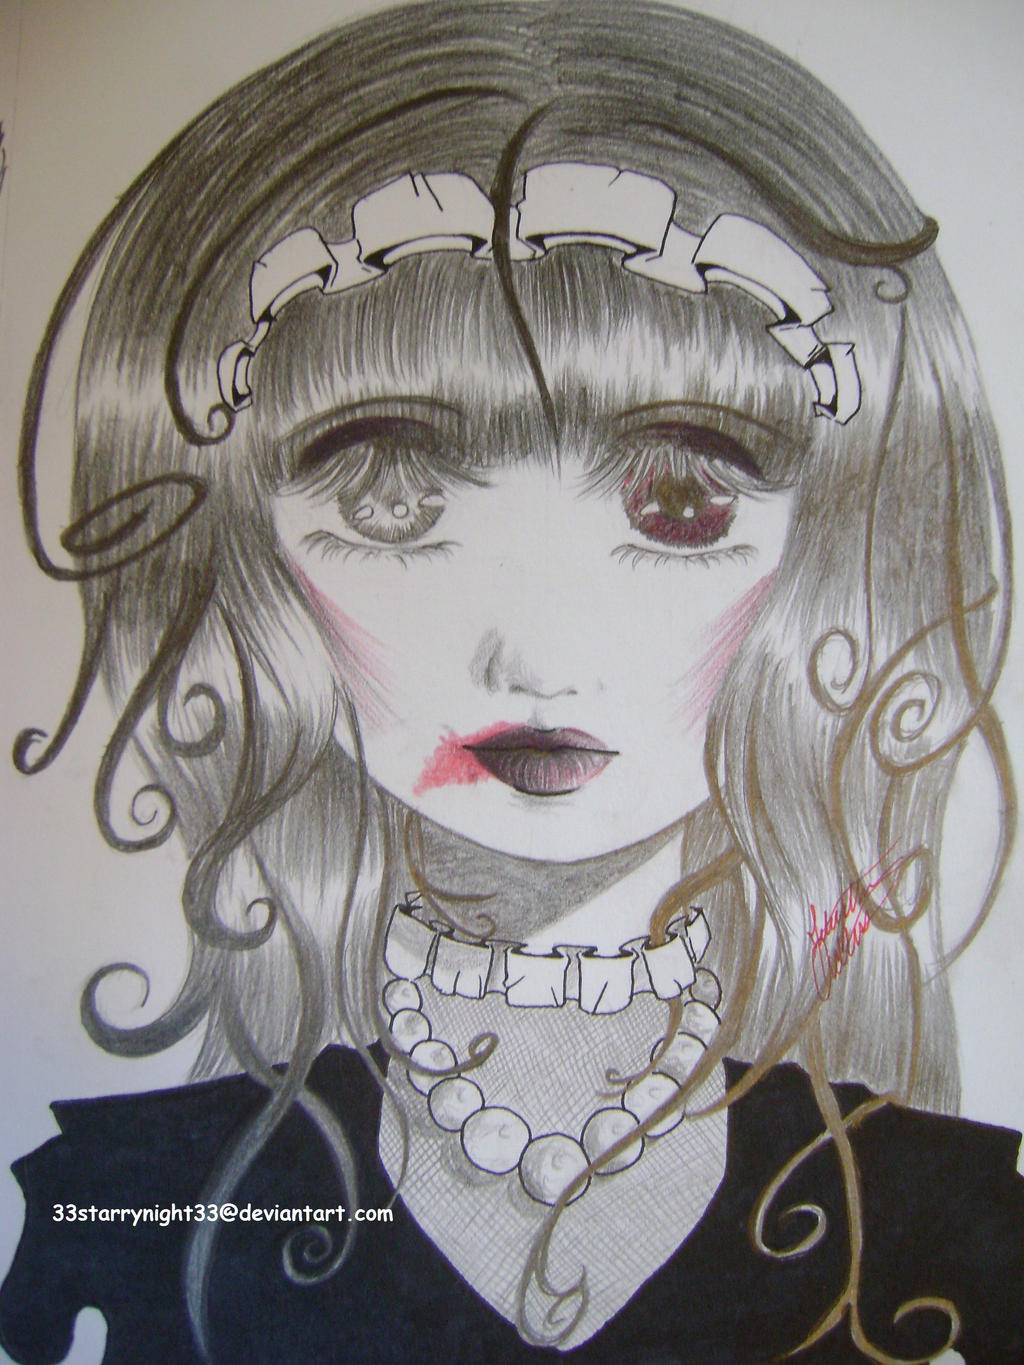 Creepy doll drawing by 33starrynight33 on DeviantArt